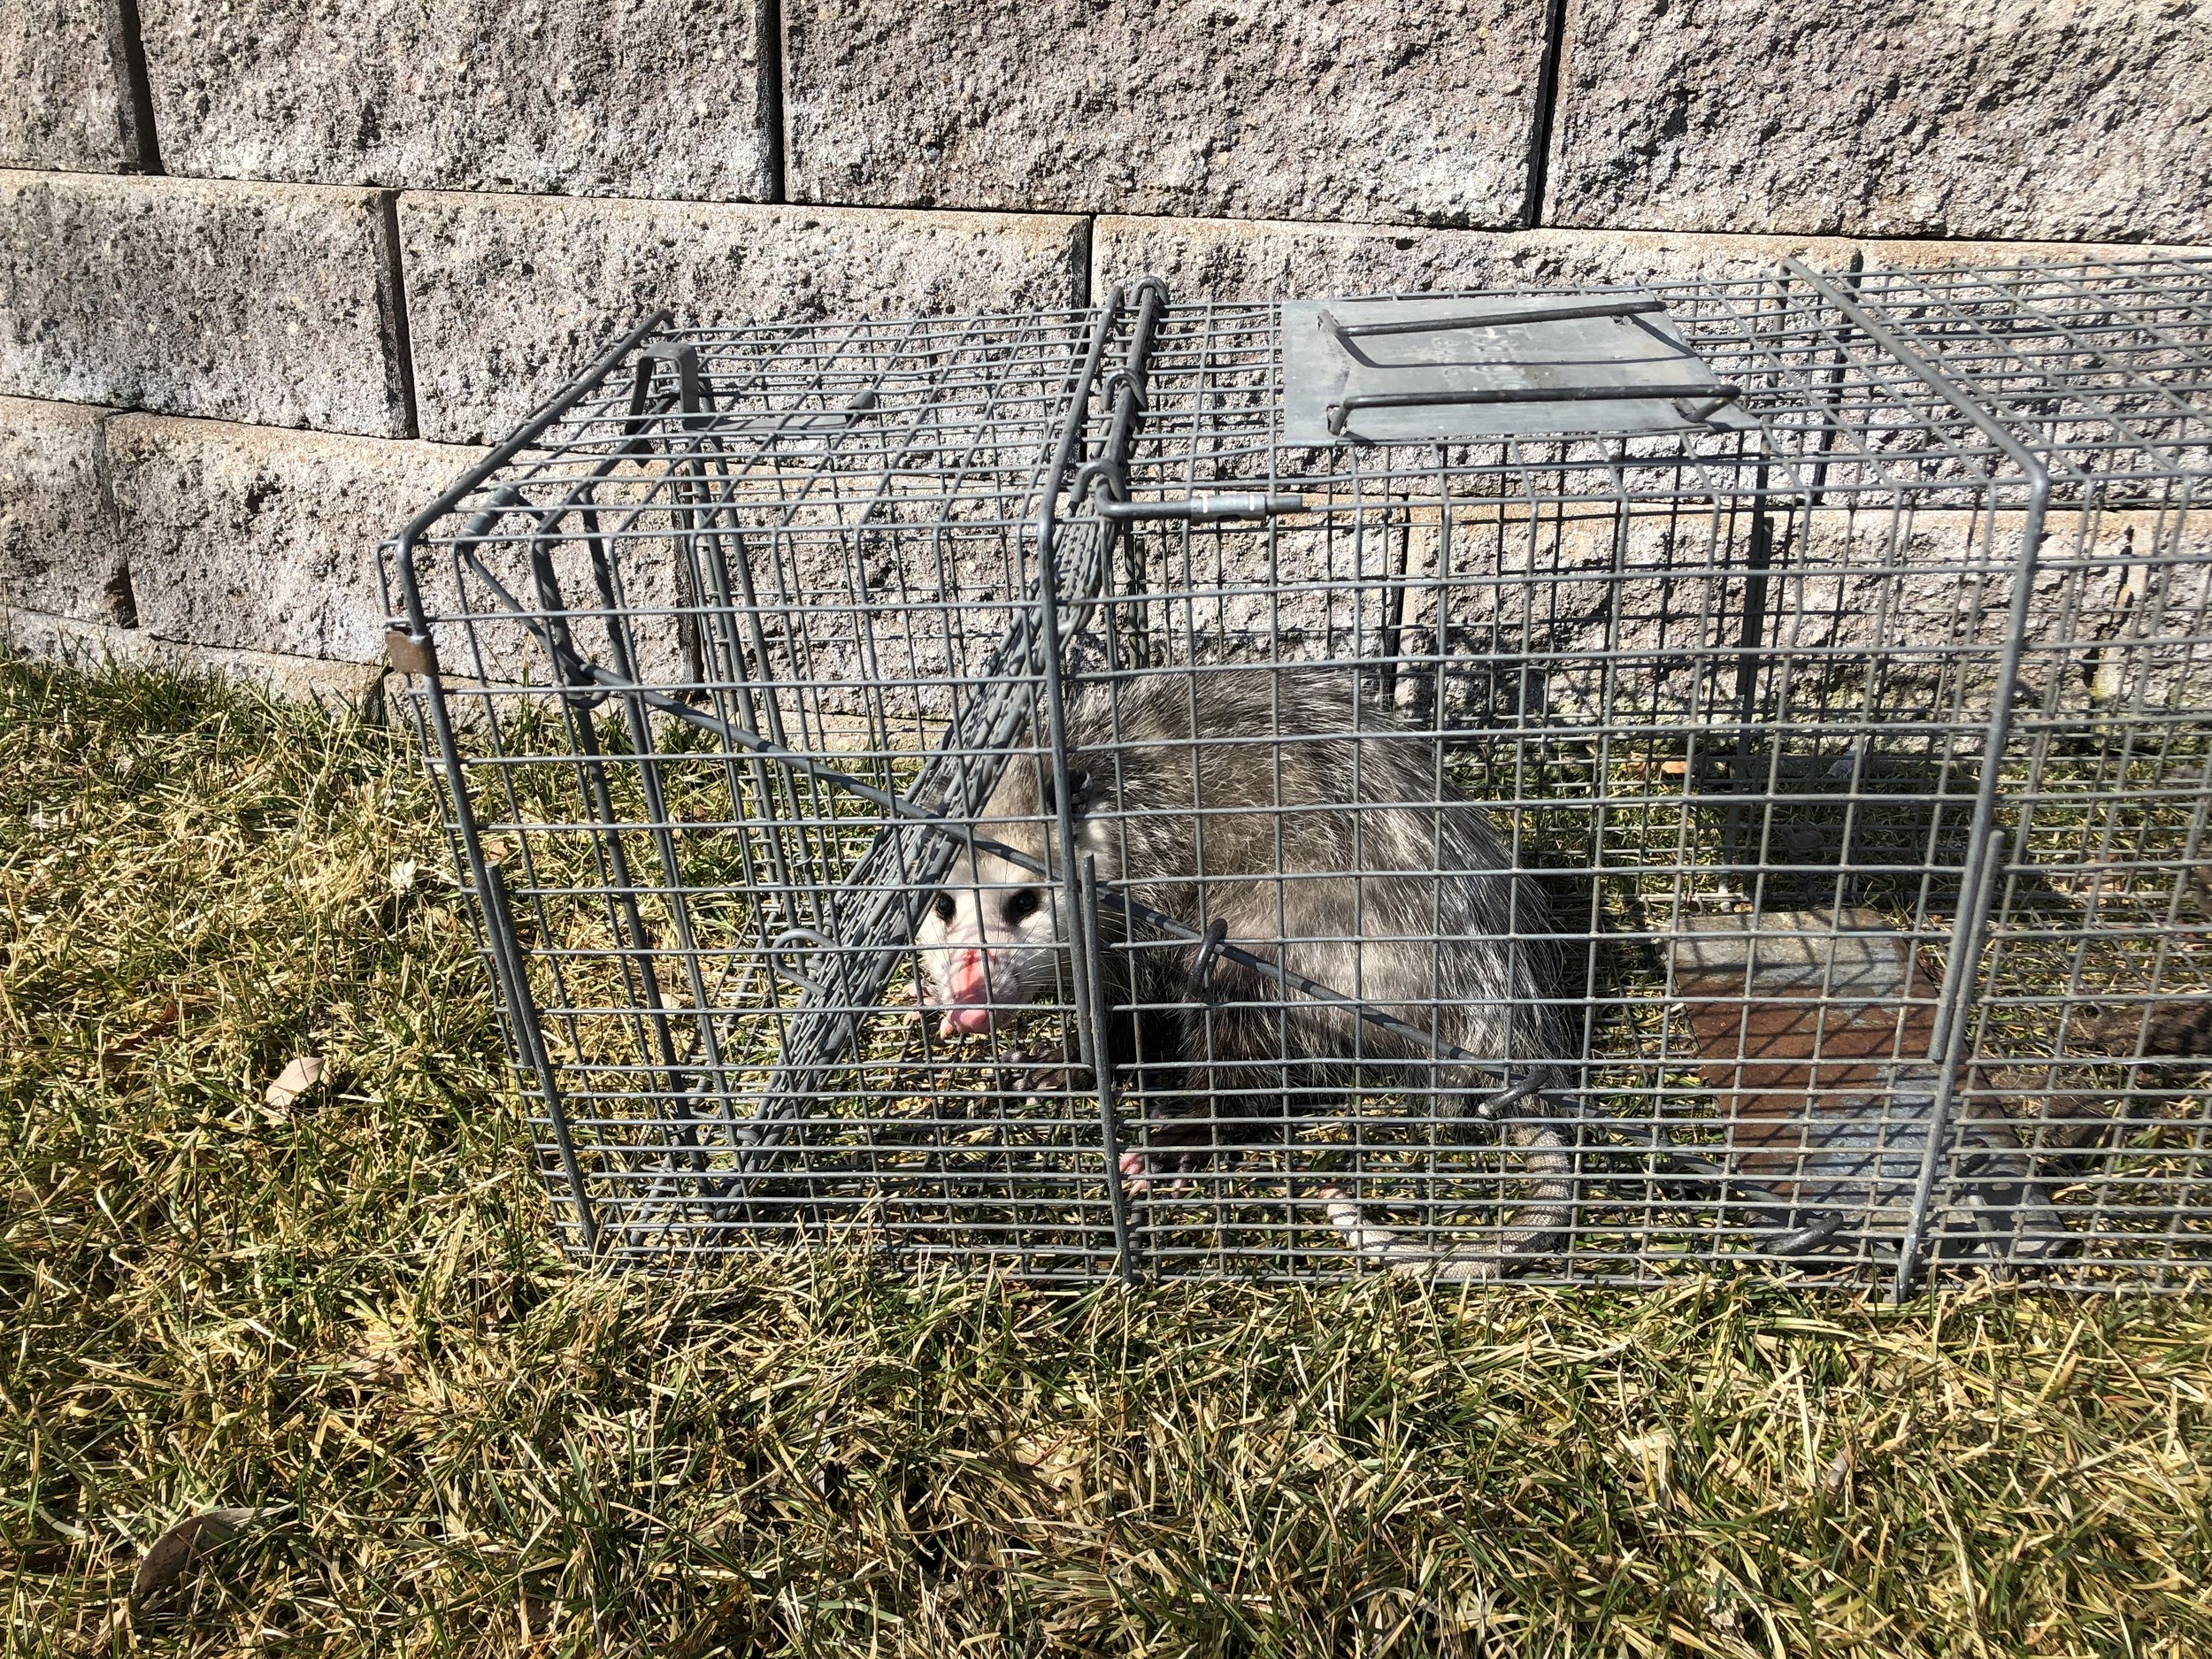 Opossum was a frequent visitor to the trash cans.